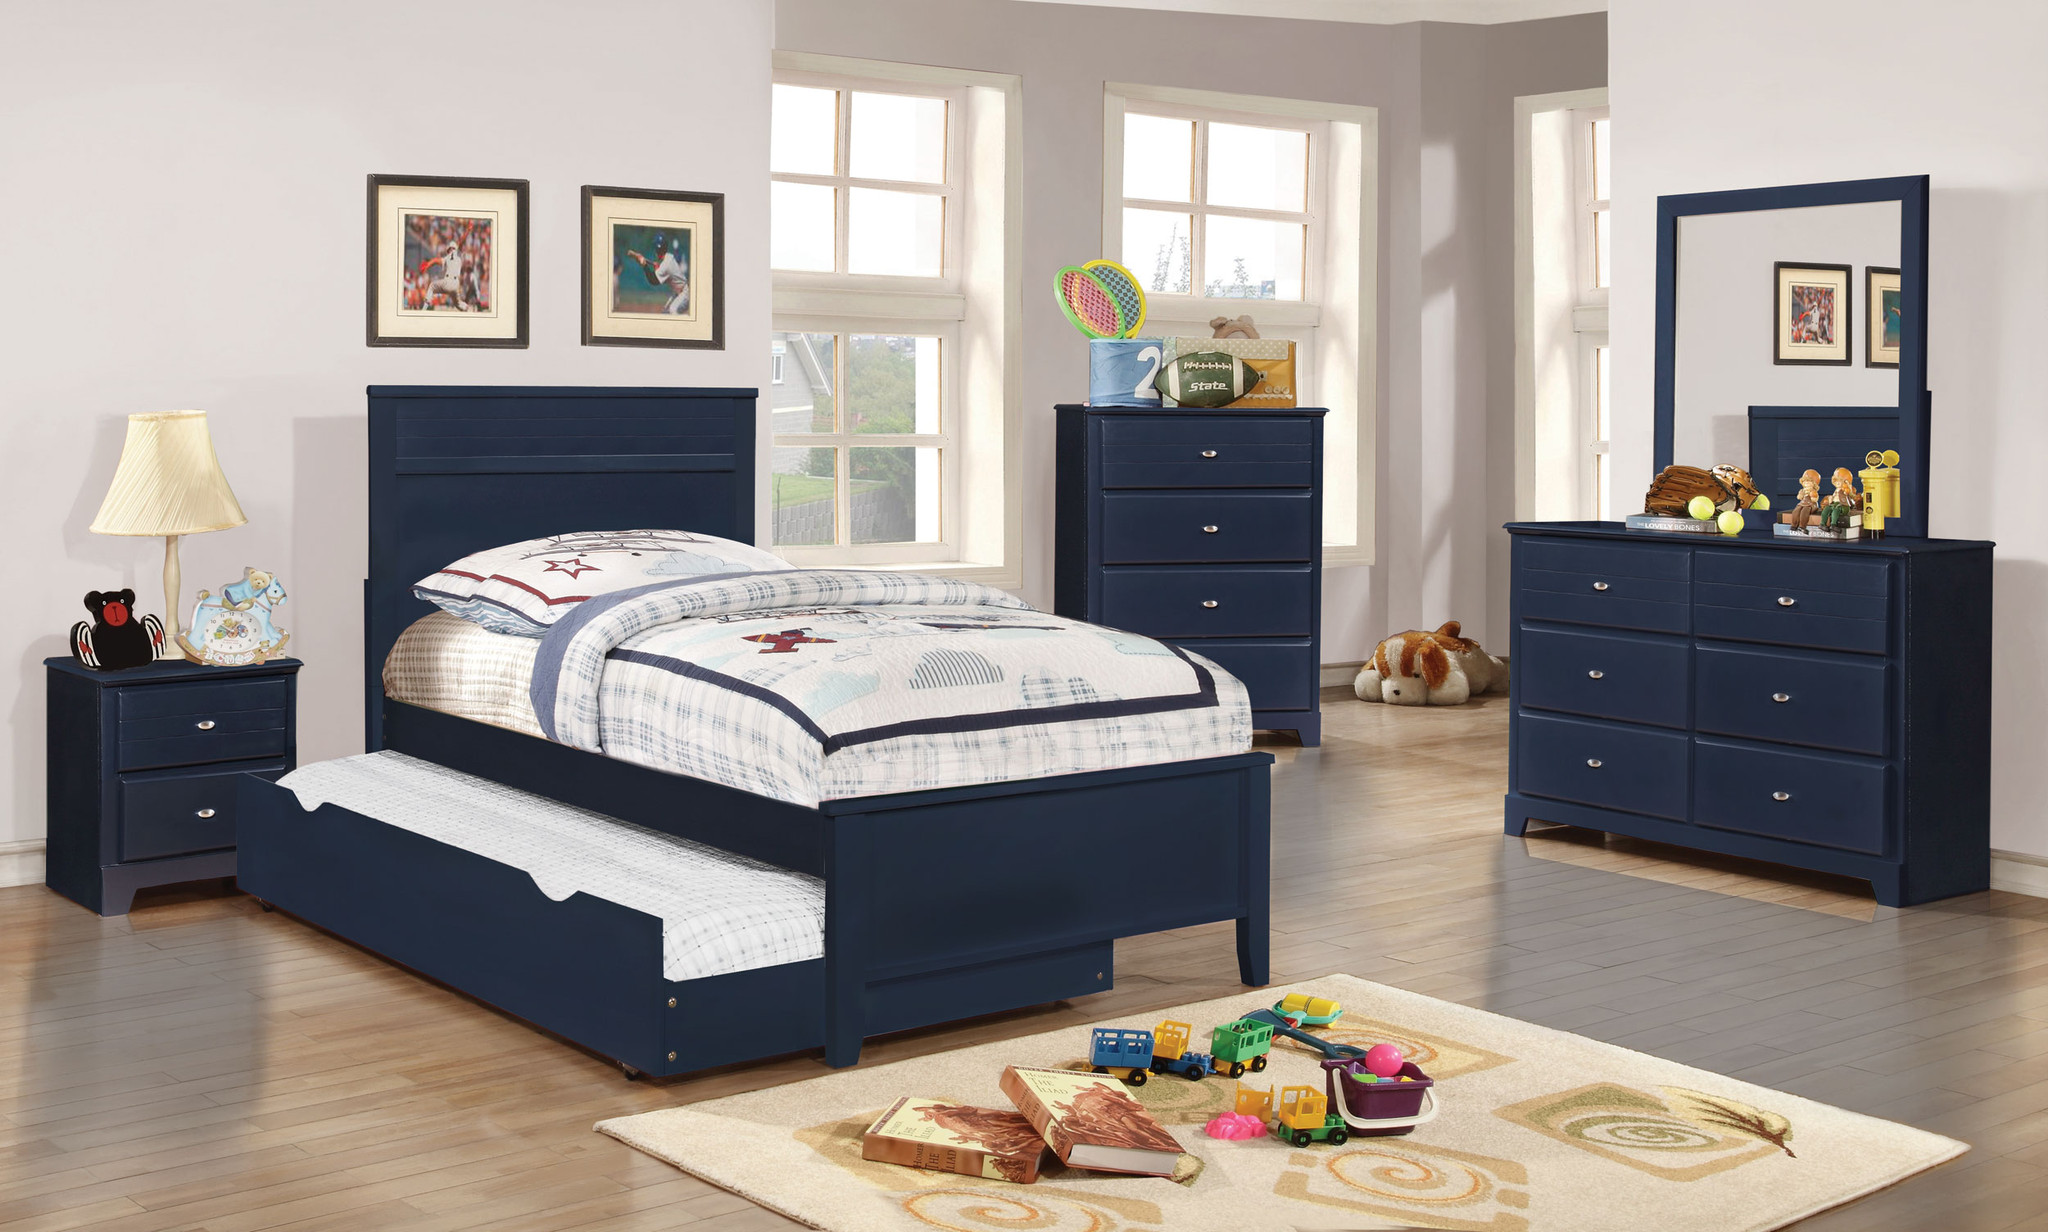 Boys blue bedroom furniture